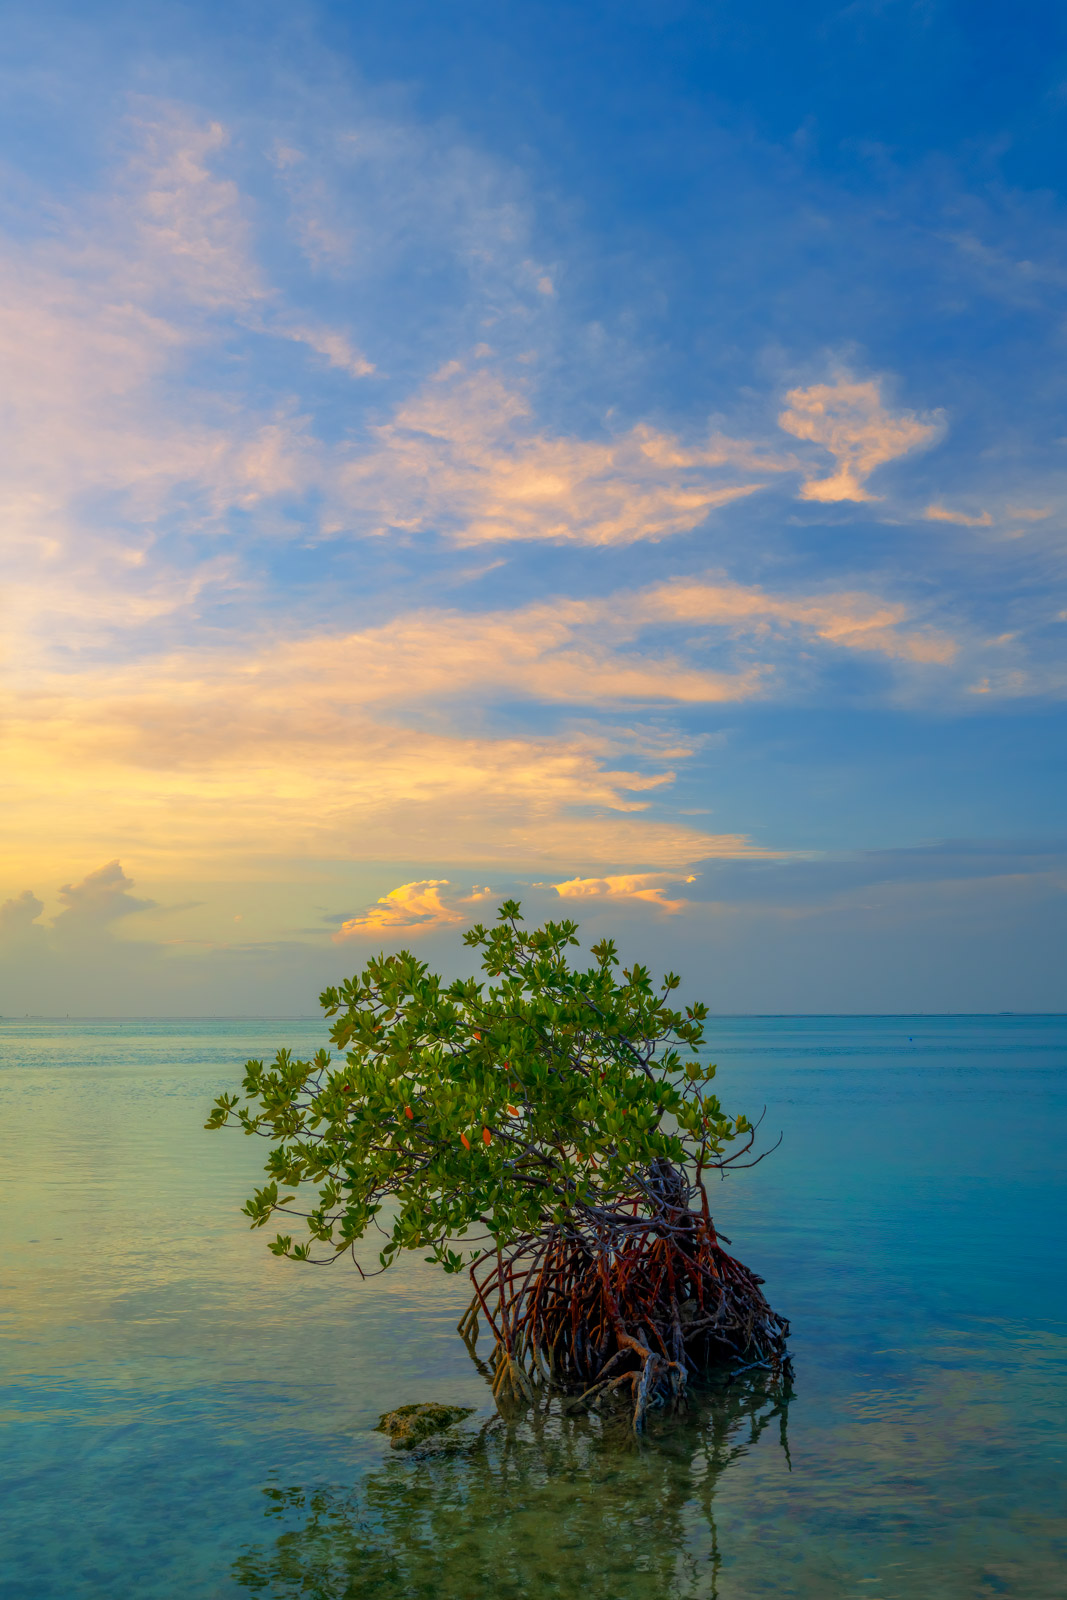 A Limited Edition, Fine Art photograph of a mangrove during a beautiful sunset in the Florida Keys. Available as a Fine Art print...